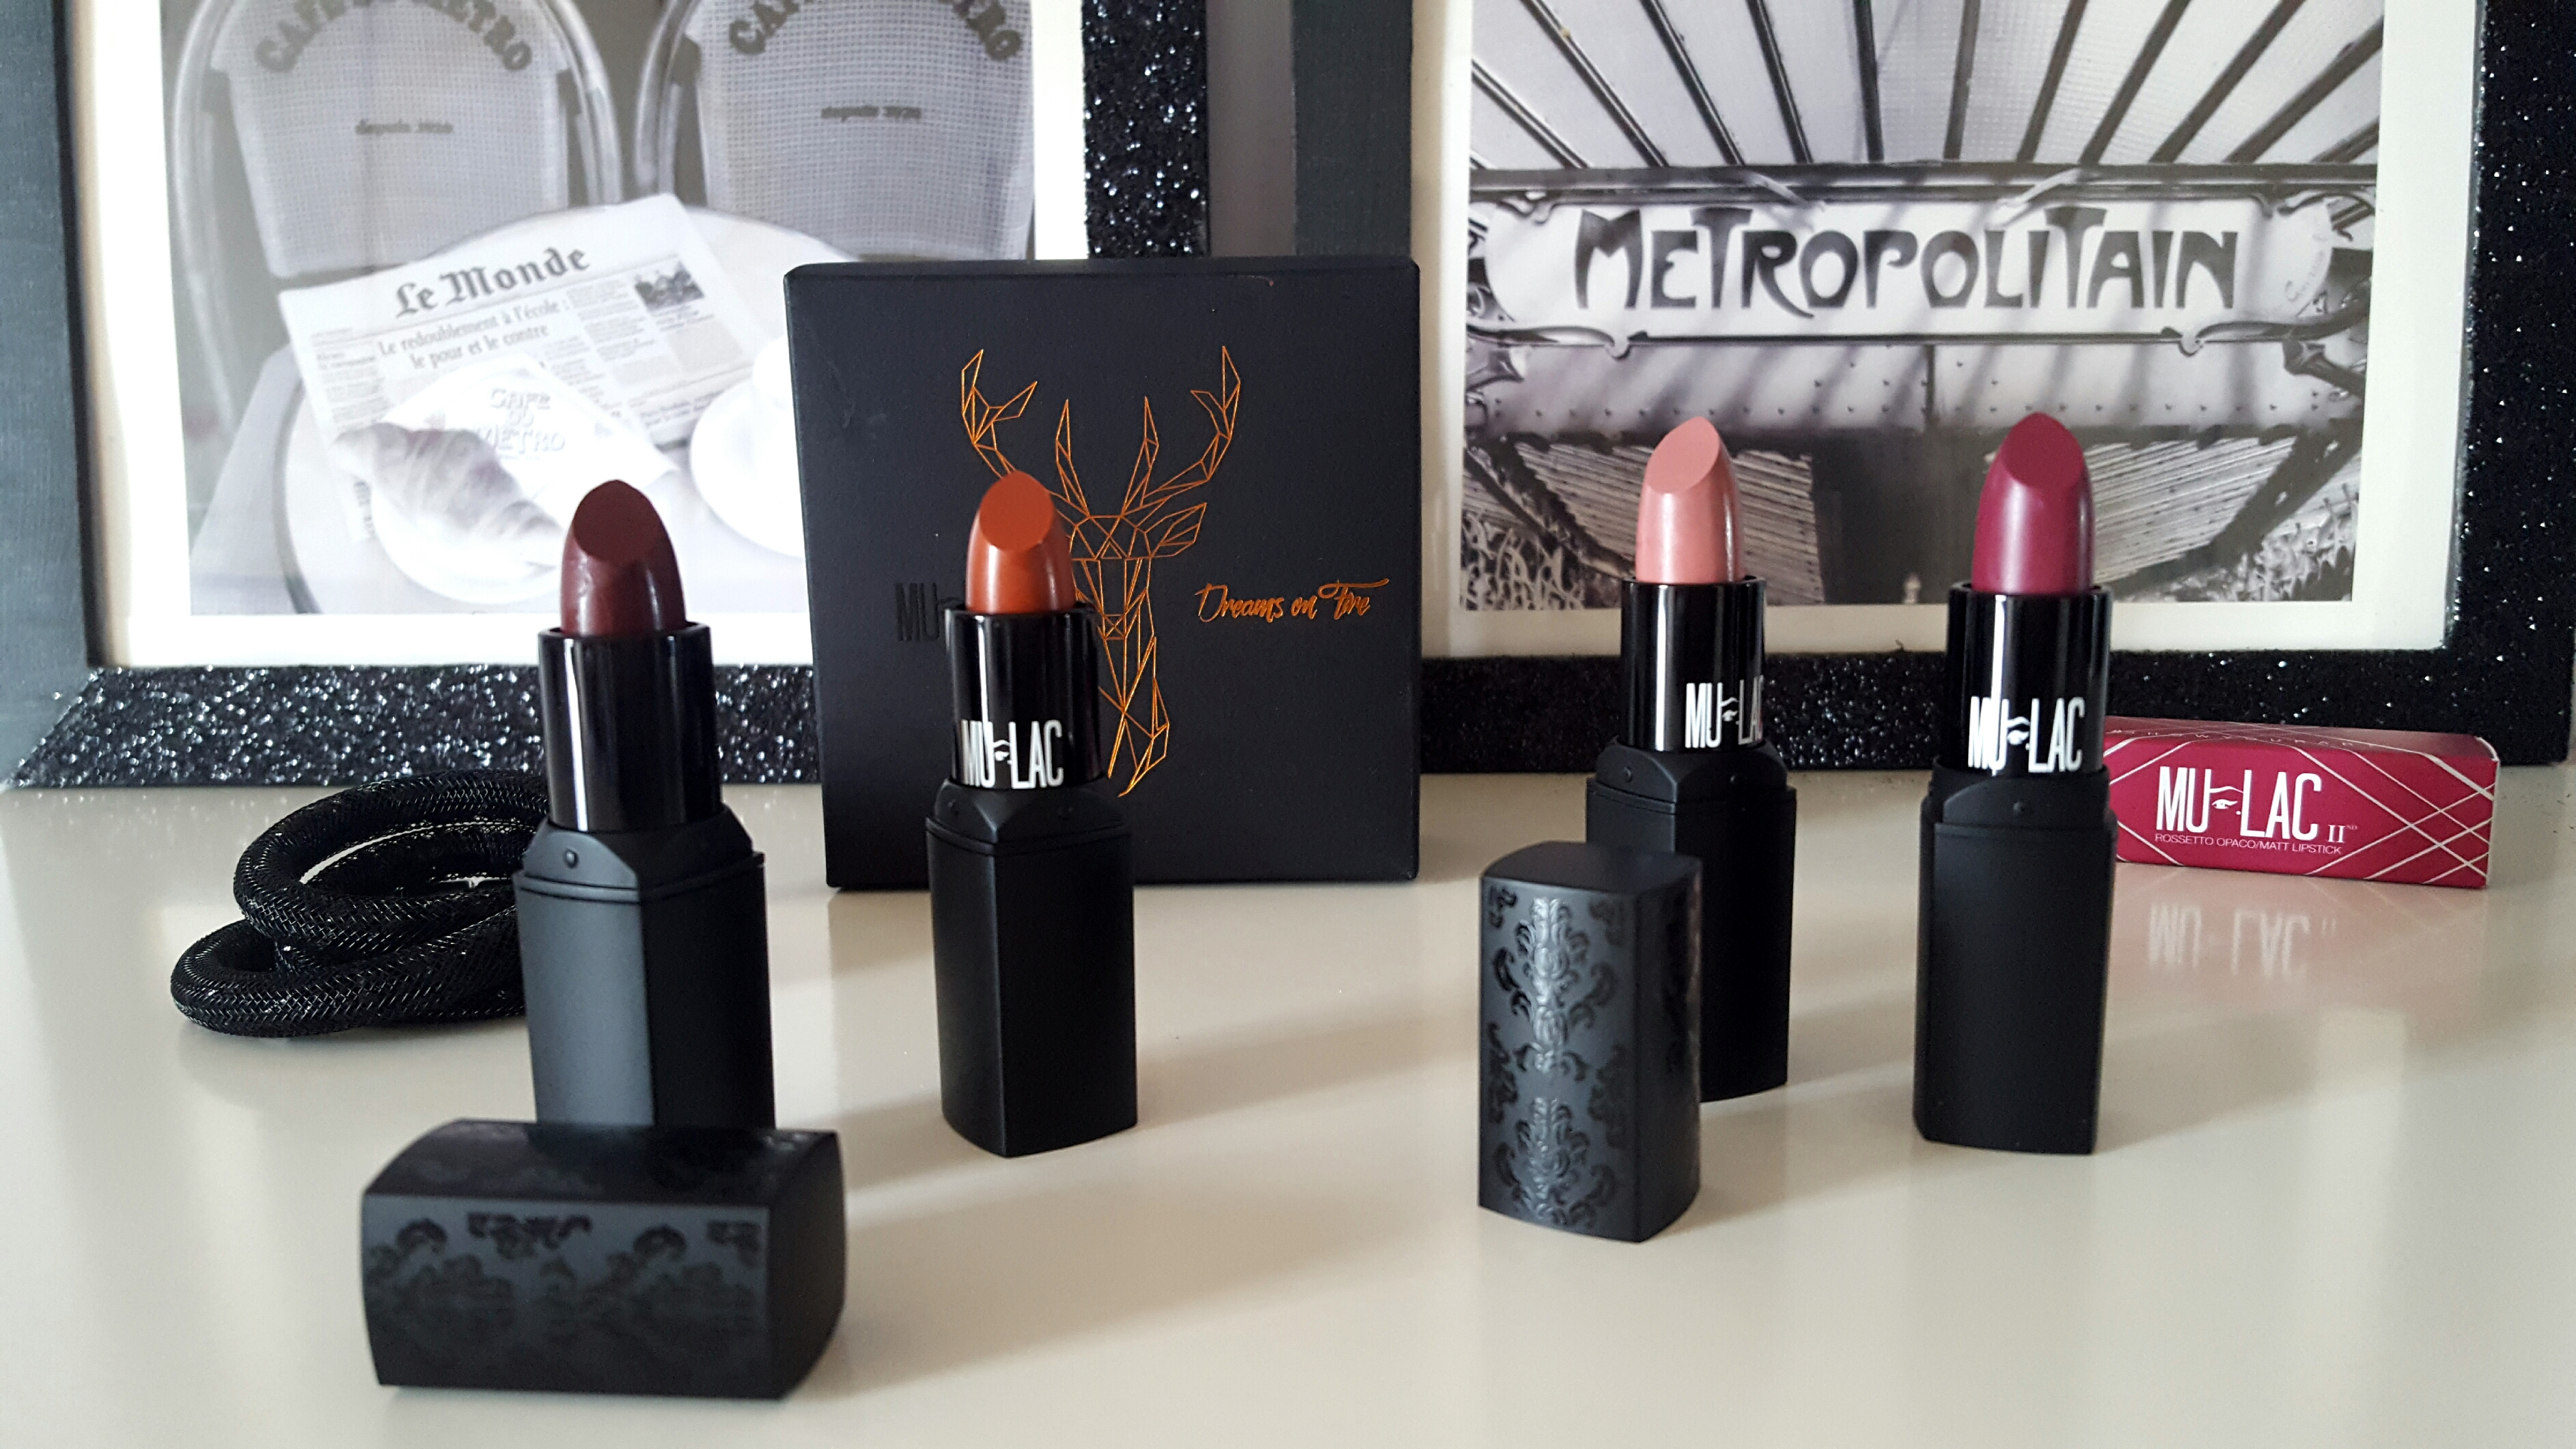 Haul rossetti Mulac - Ordinary Babe, Satisfaction, Fire e Dreams On